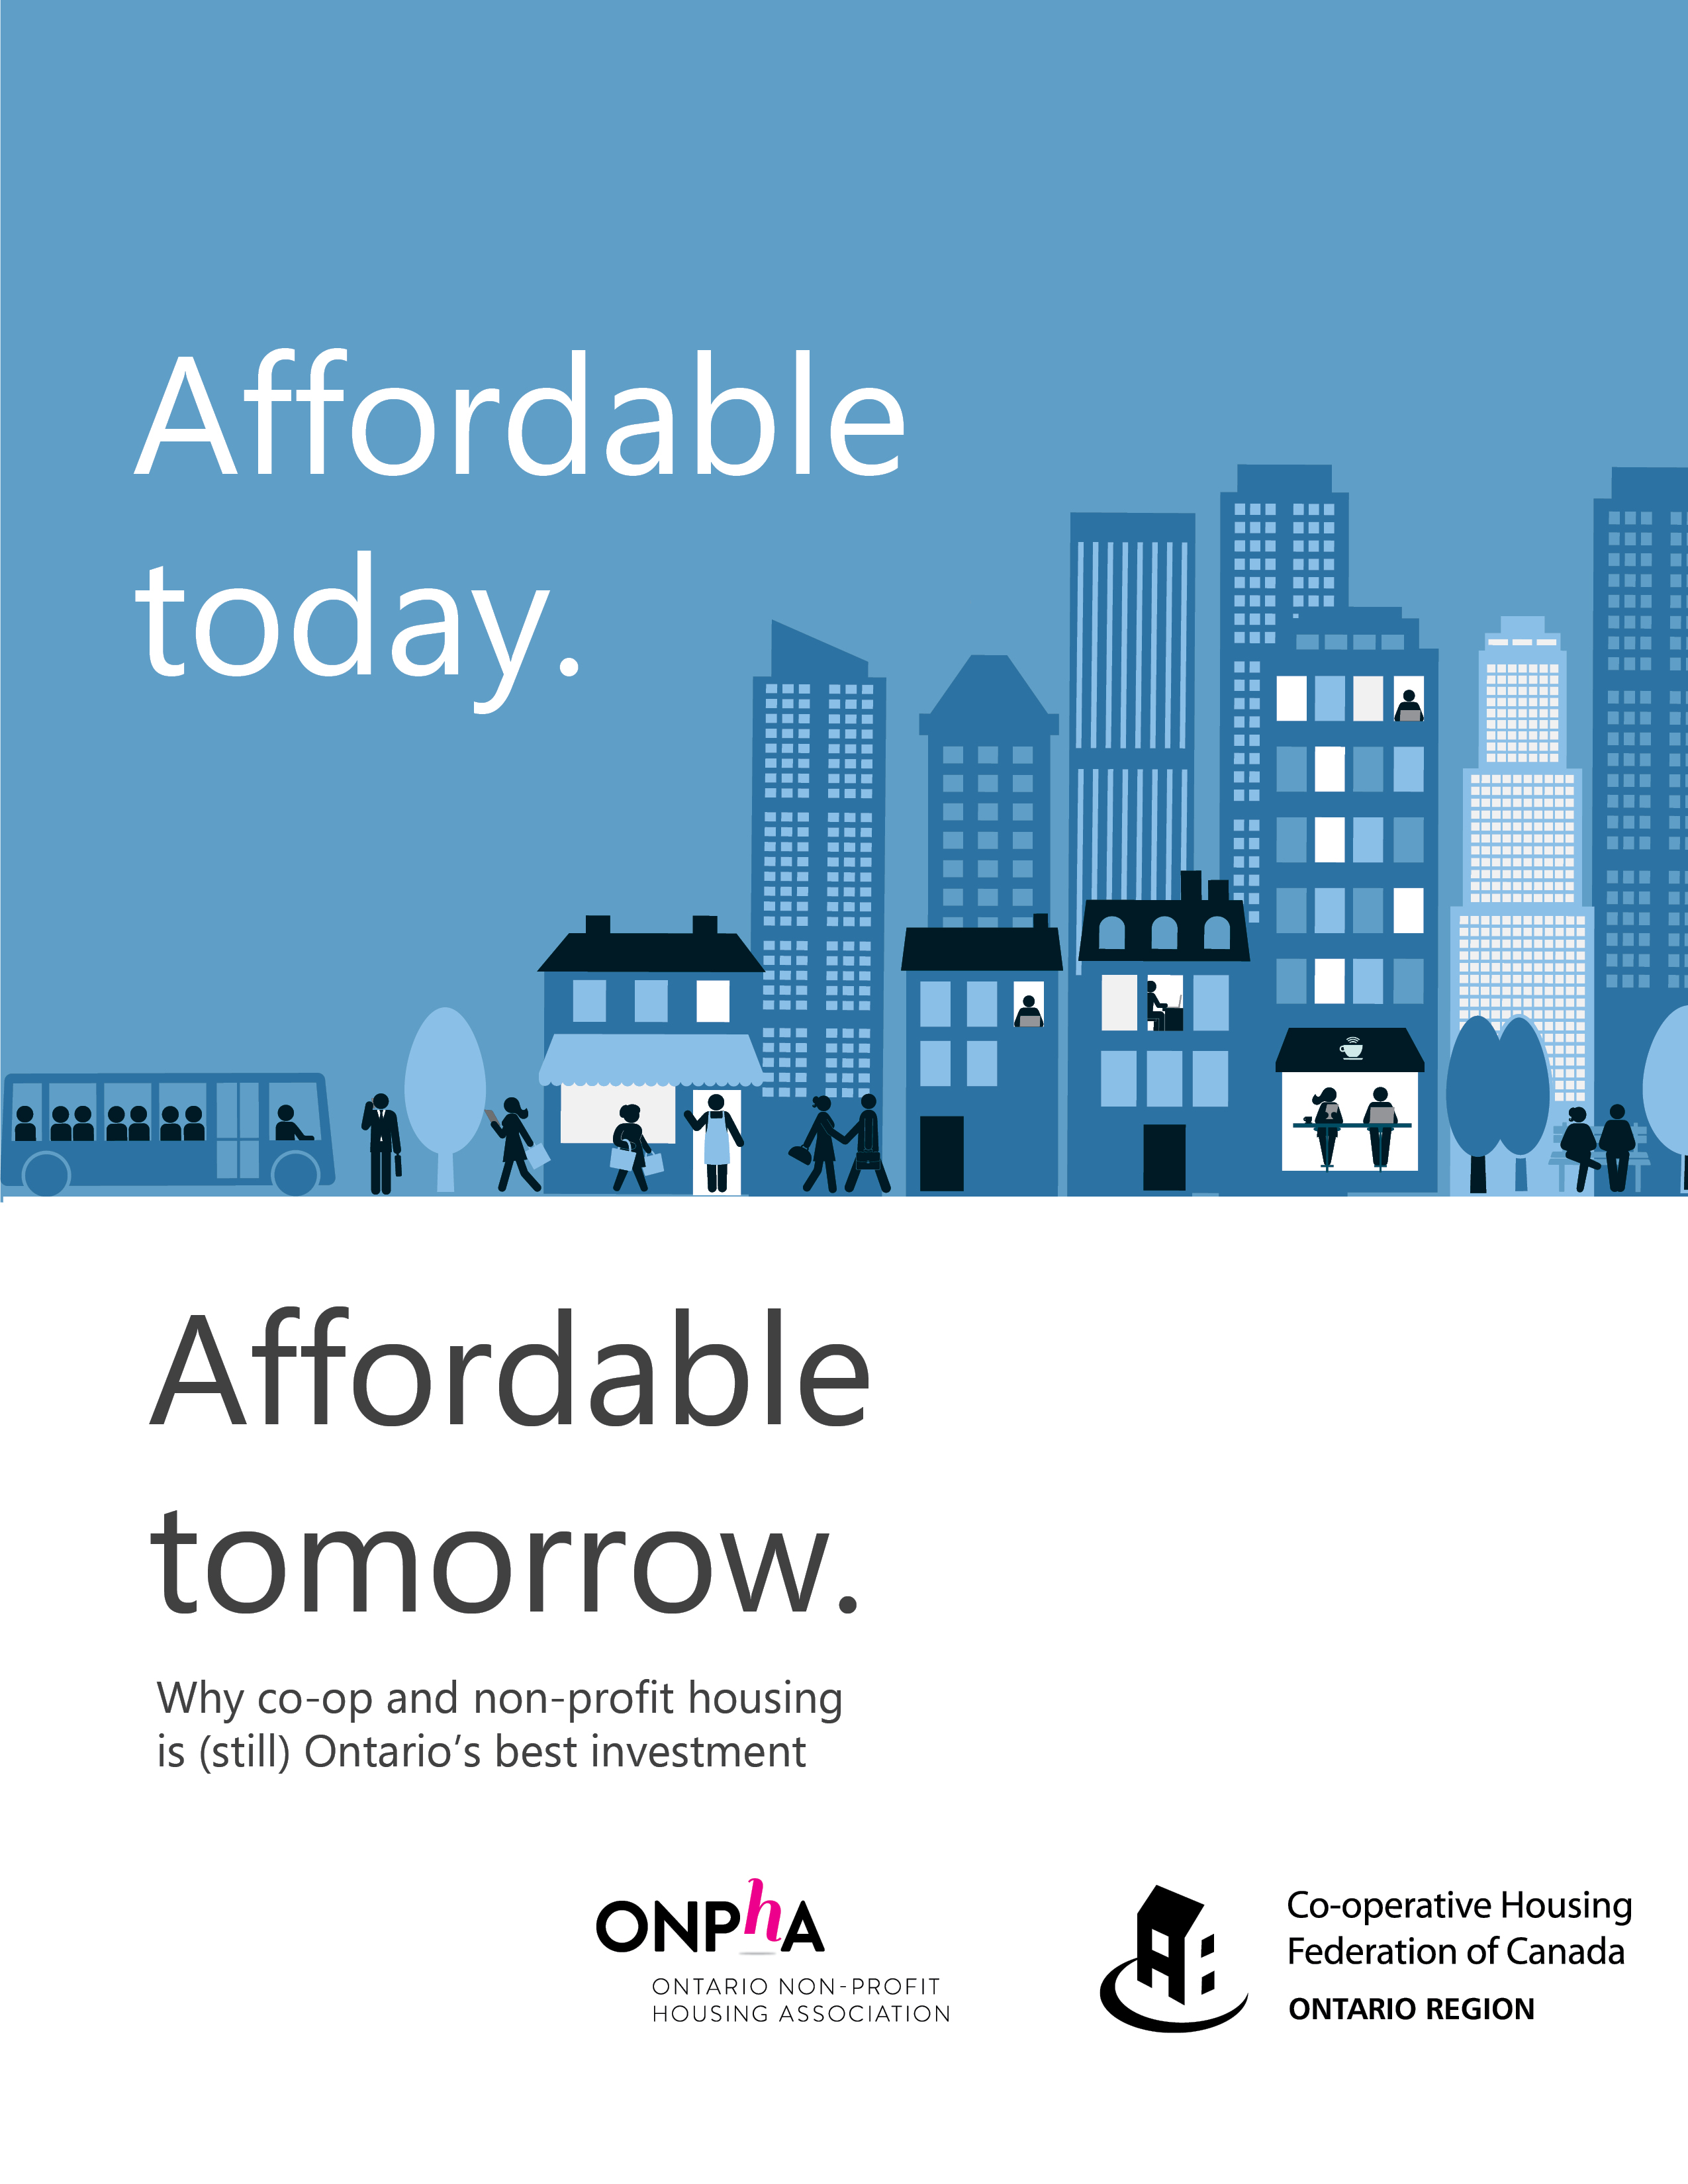 Cover page of ONPHA and CHF's Affordable Today, Affordable Tomorrow brochure